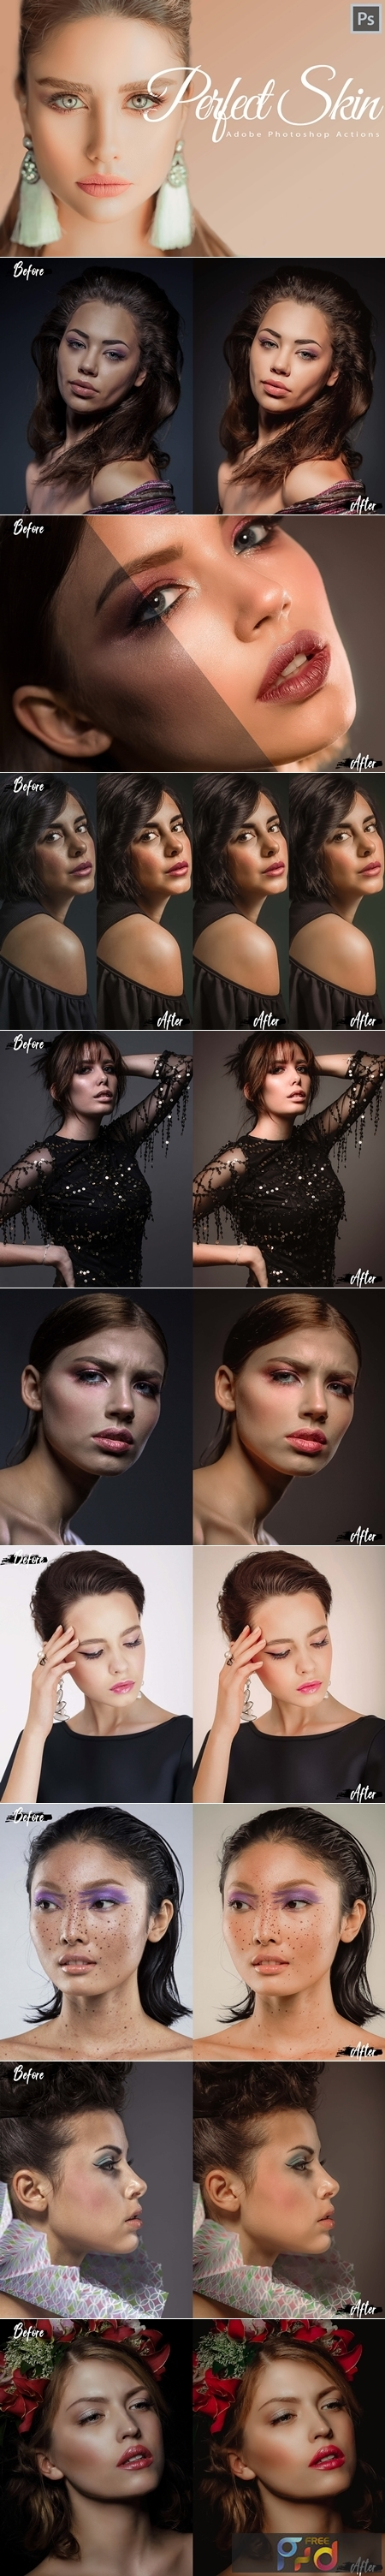 18 Perfect Skin Photoshop Actions, ACR and LUT presets, skin retouch 3615571 1